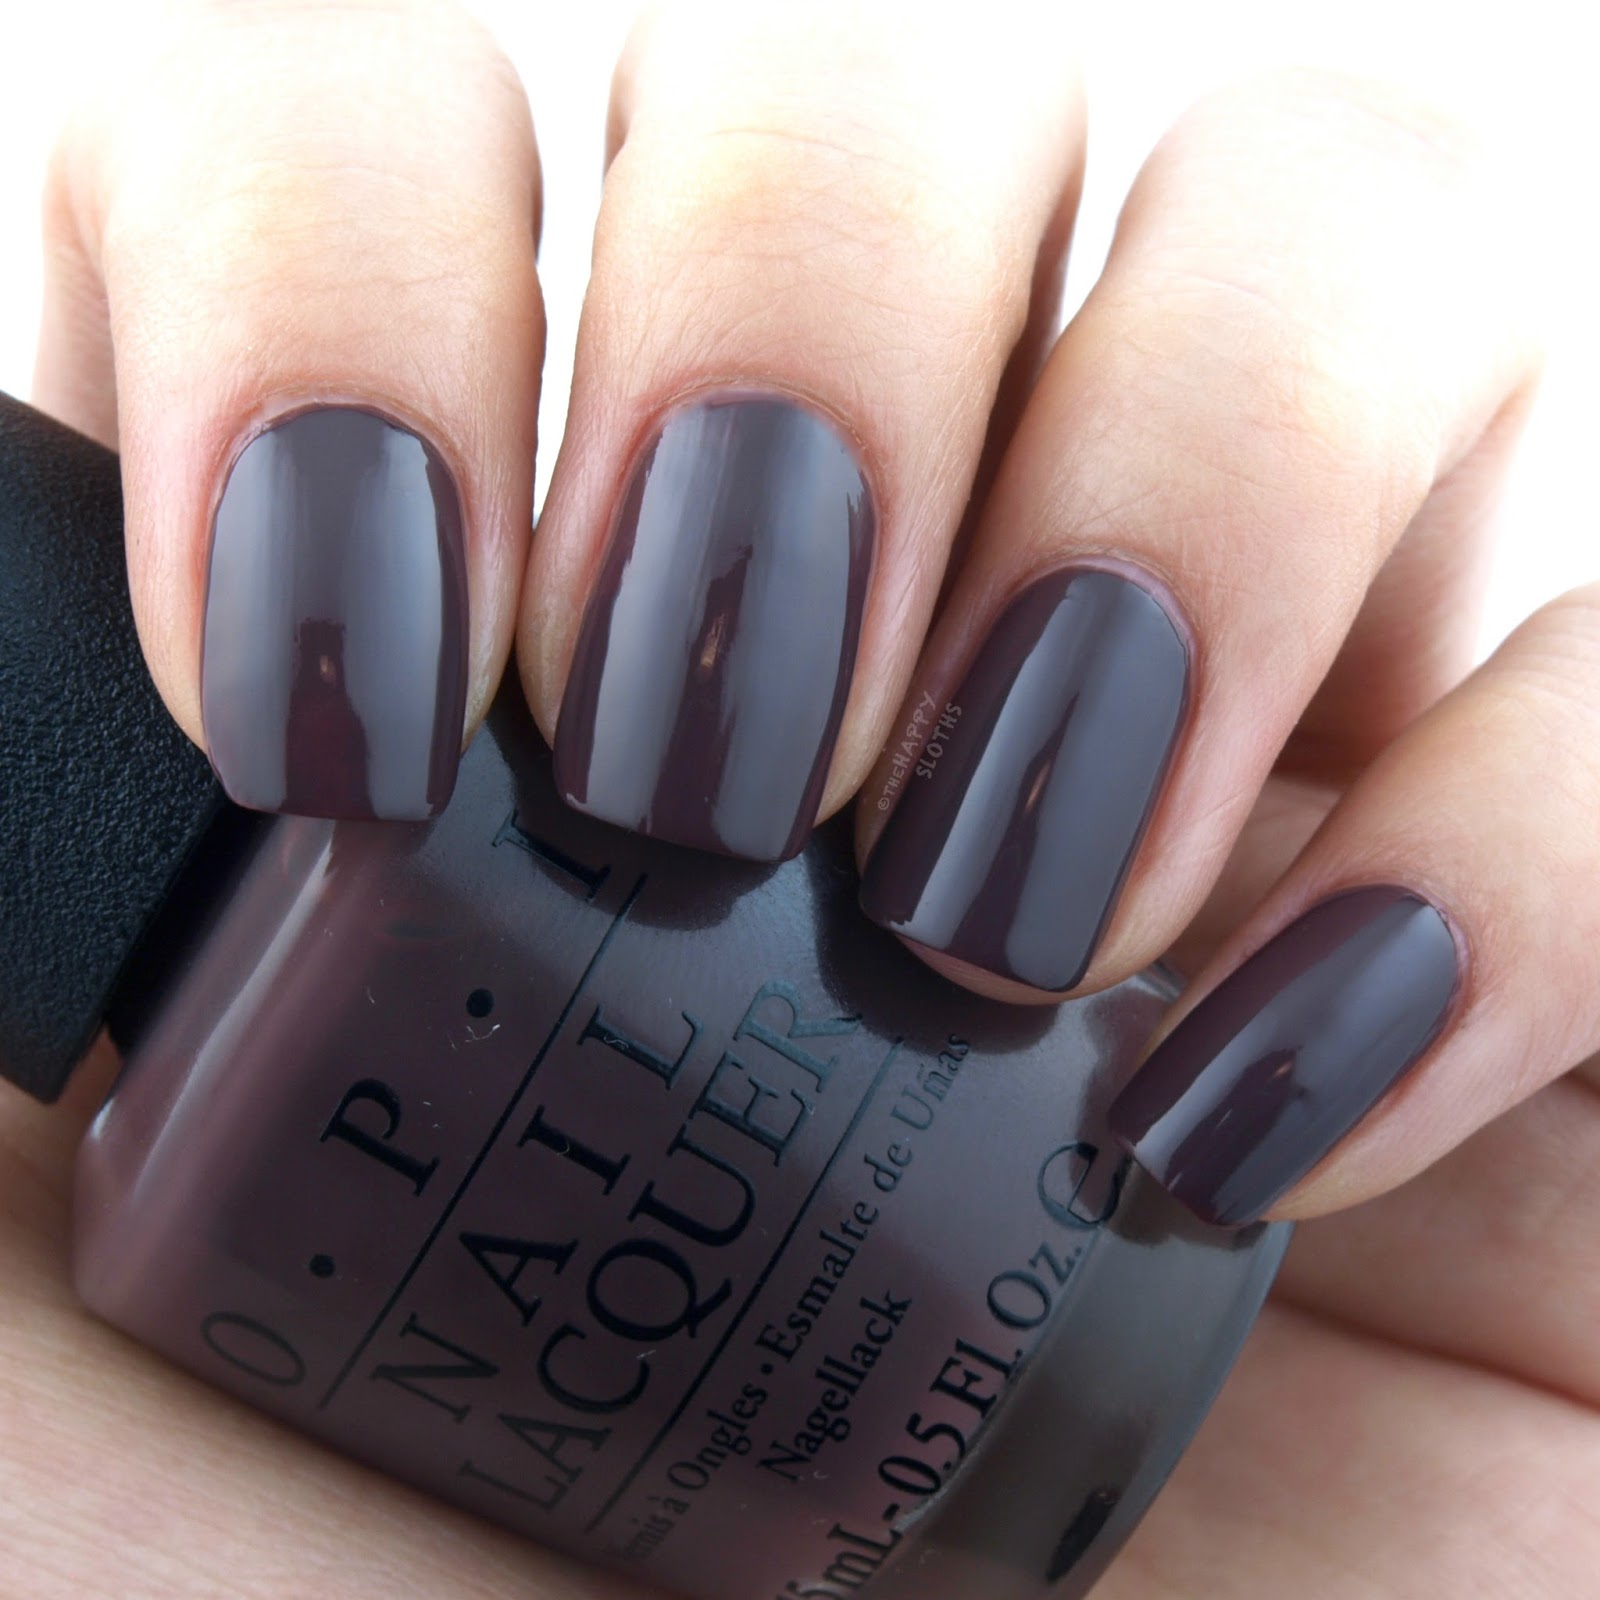 OPI Fall 2017 Iceland Collection | That's What Friends are Thor: Review and Swatches